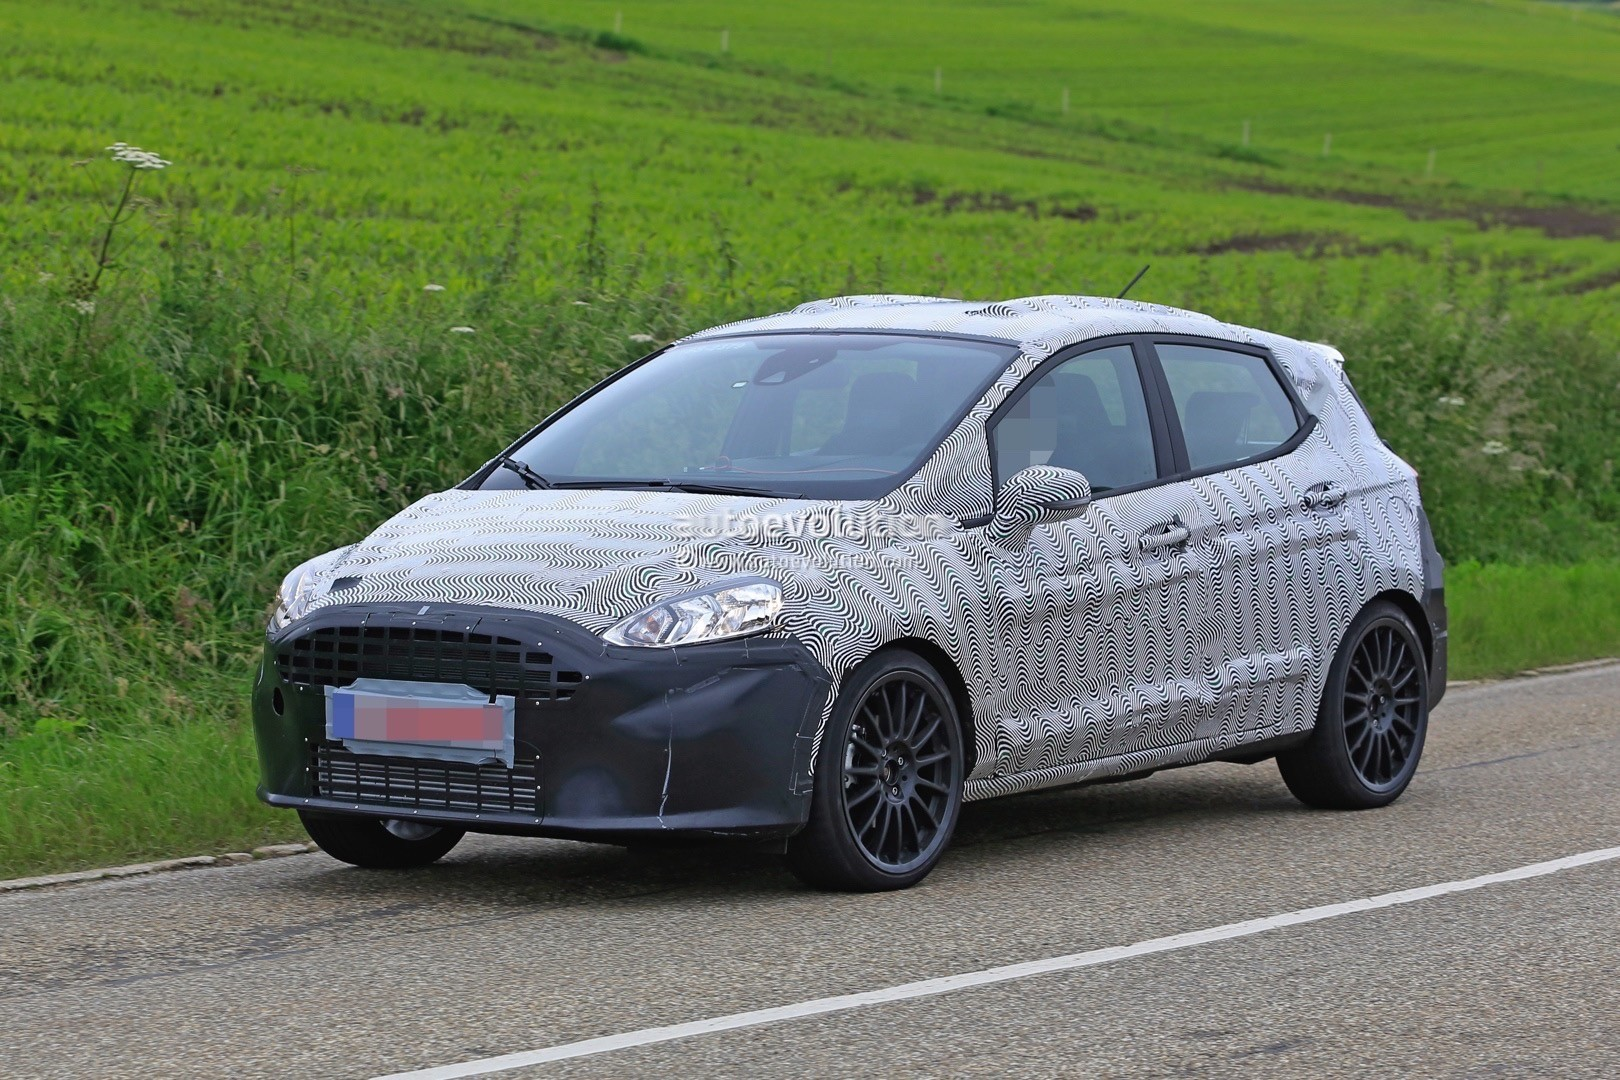 Next Ford Fiesta Arriving In 2017 With Focus Styling And